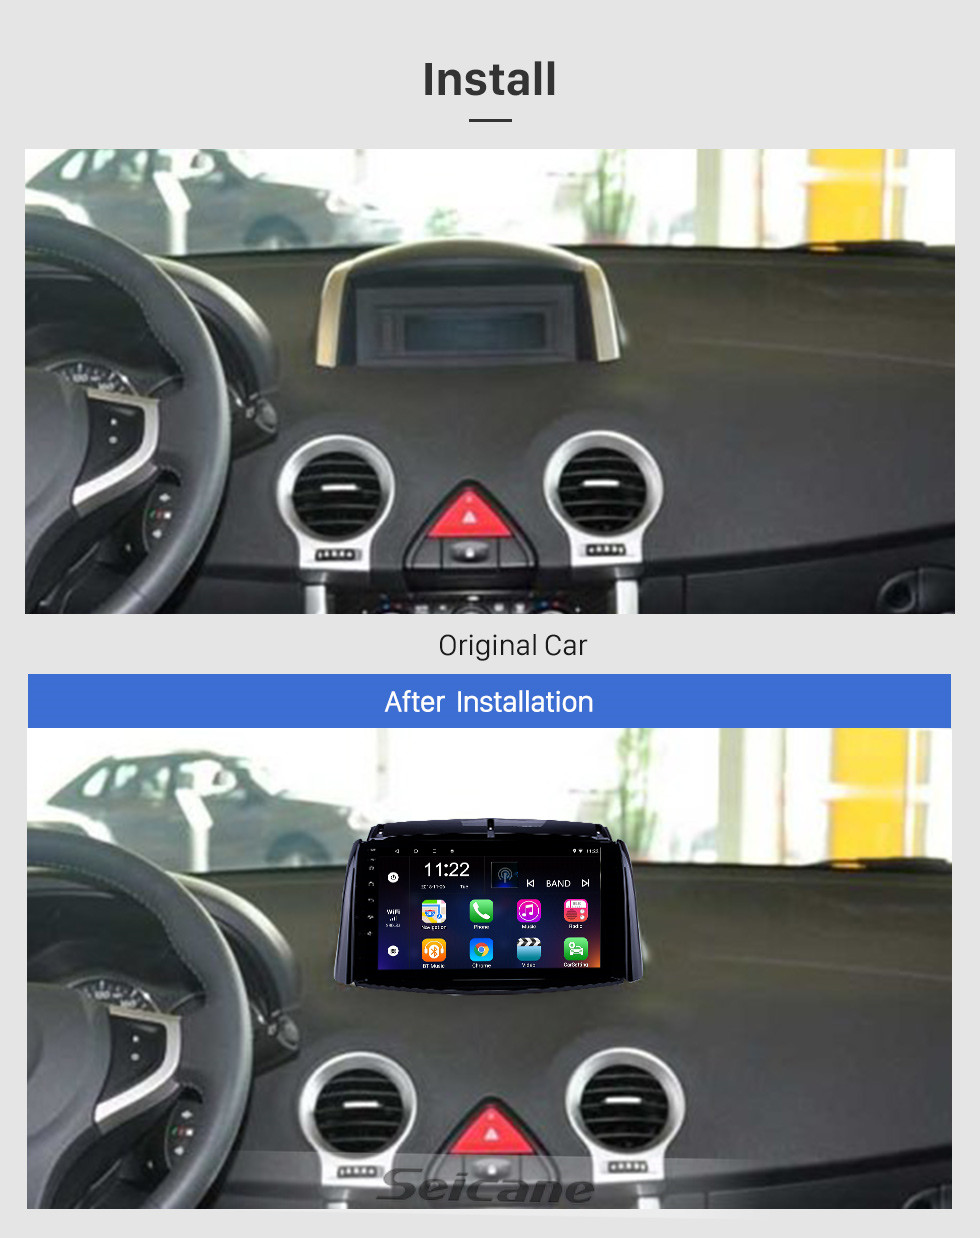 Seicane 2009-2016 Renault Koleos Android 10.0 HD Touchscreen 9 inch Head Unit Bluetooth GPS Navigation Radio with AUX support OBD2 SWC Carplay